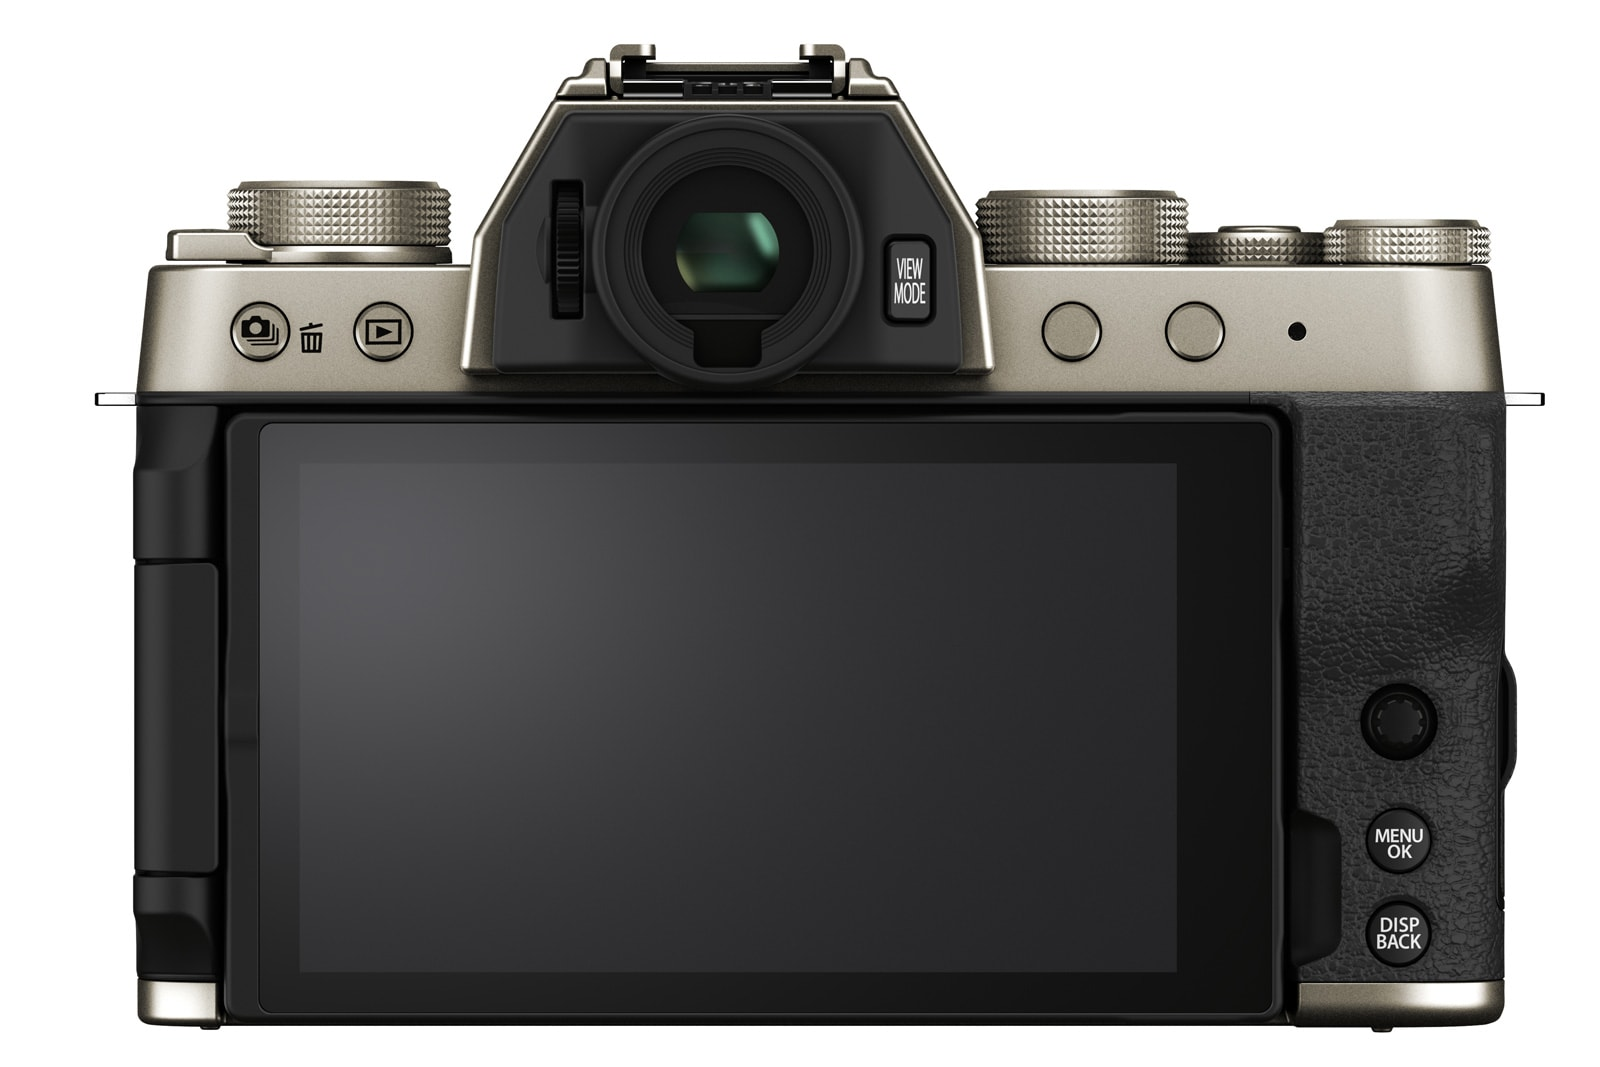 Fujifilm X-T200 mirrorless camera rear view